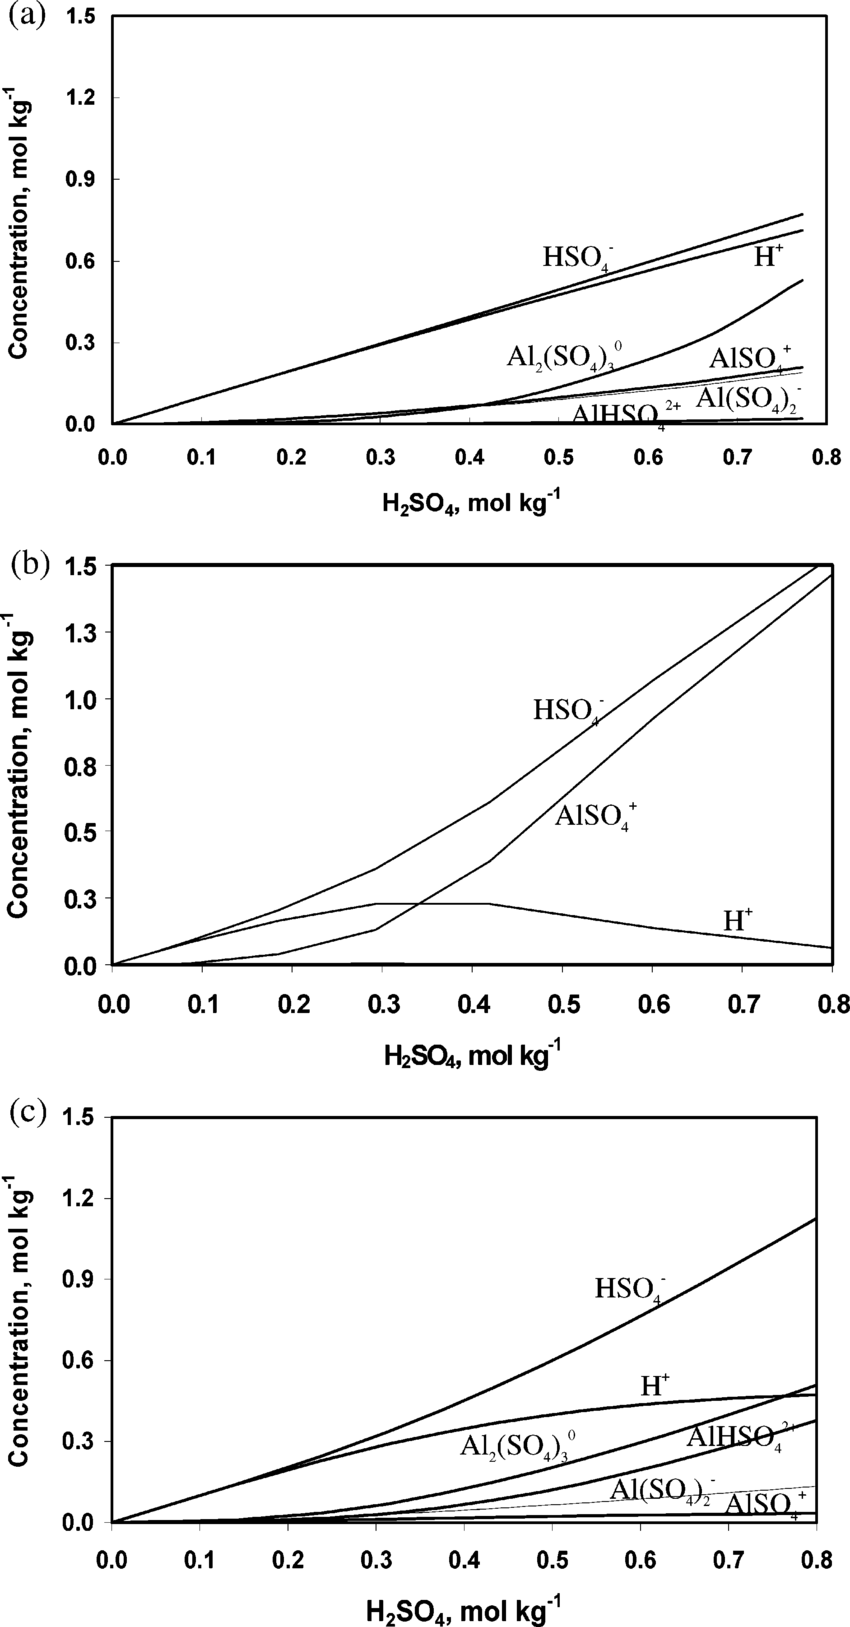 hight resolution of calculated species concentrations in the saturated al2 so4 3 h2so4 solutions at 250